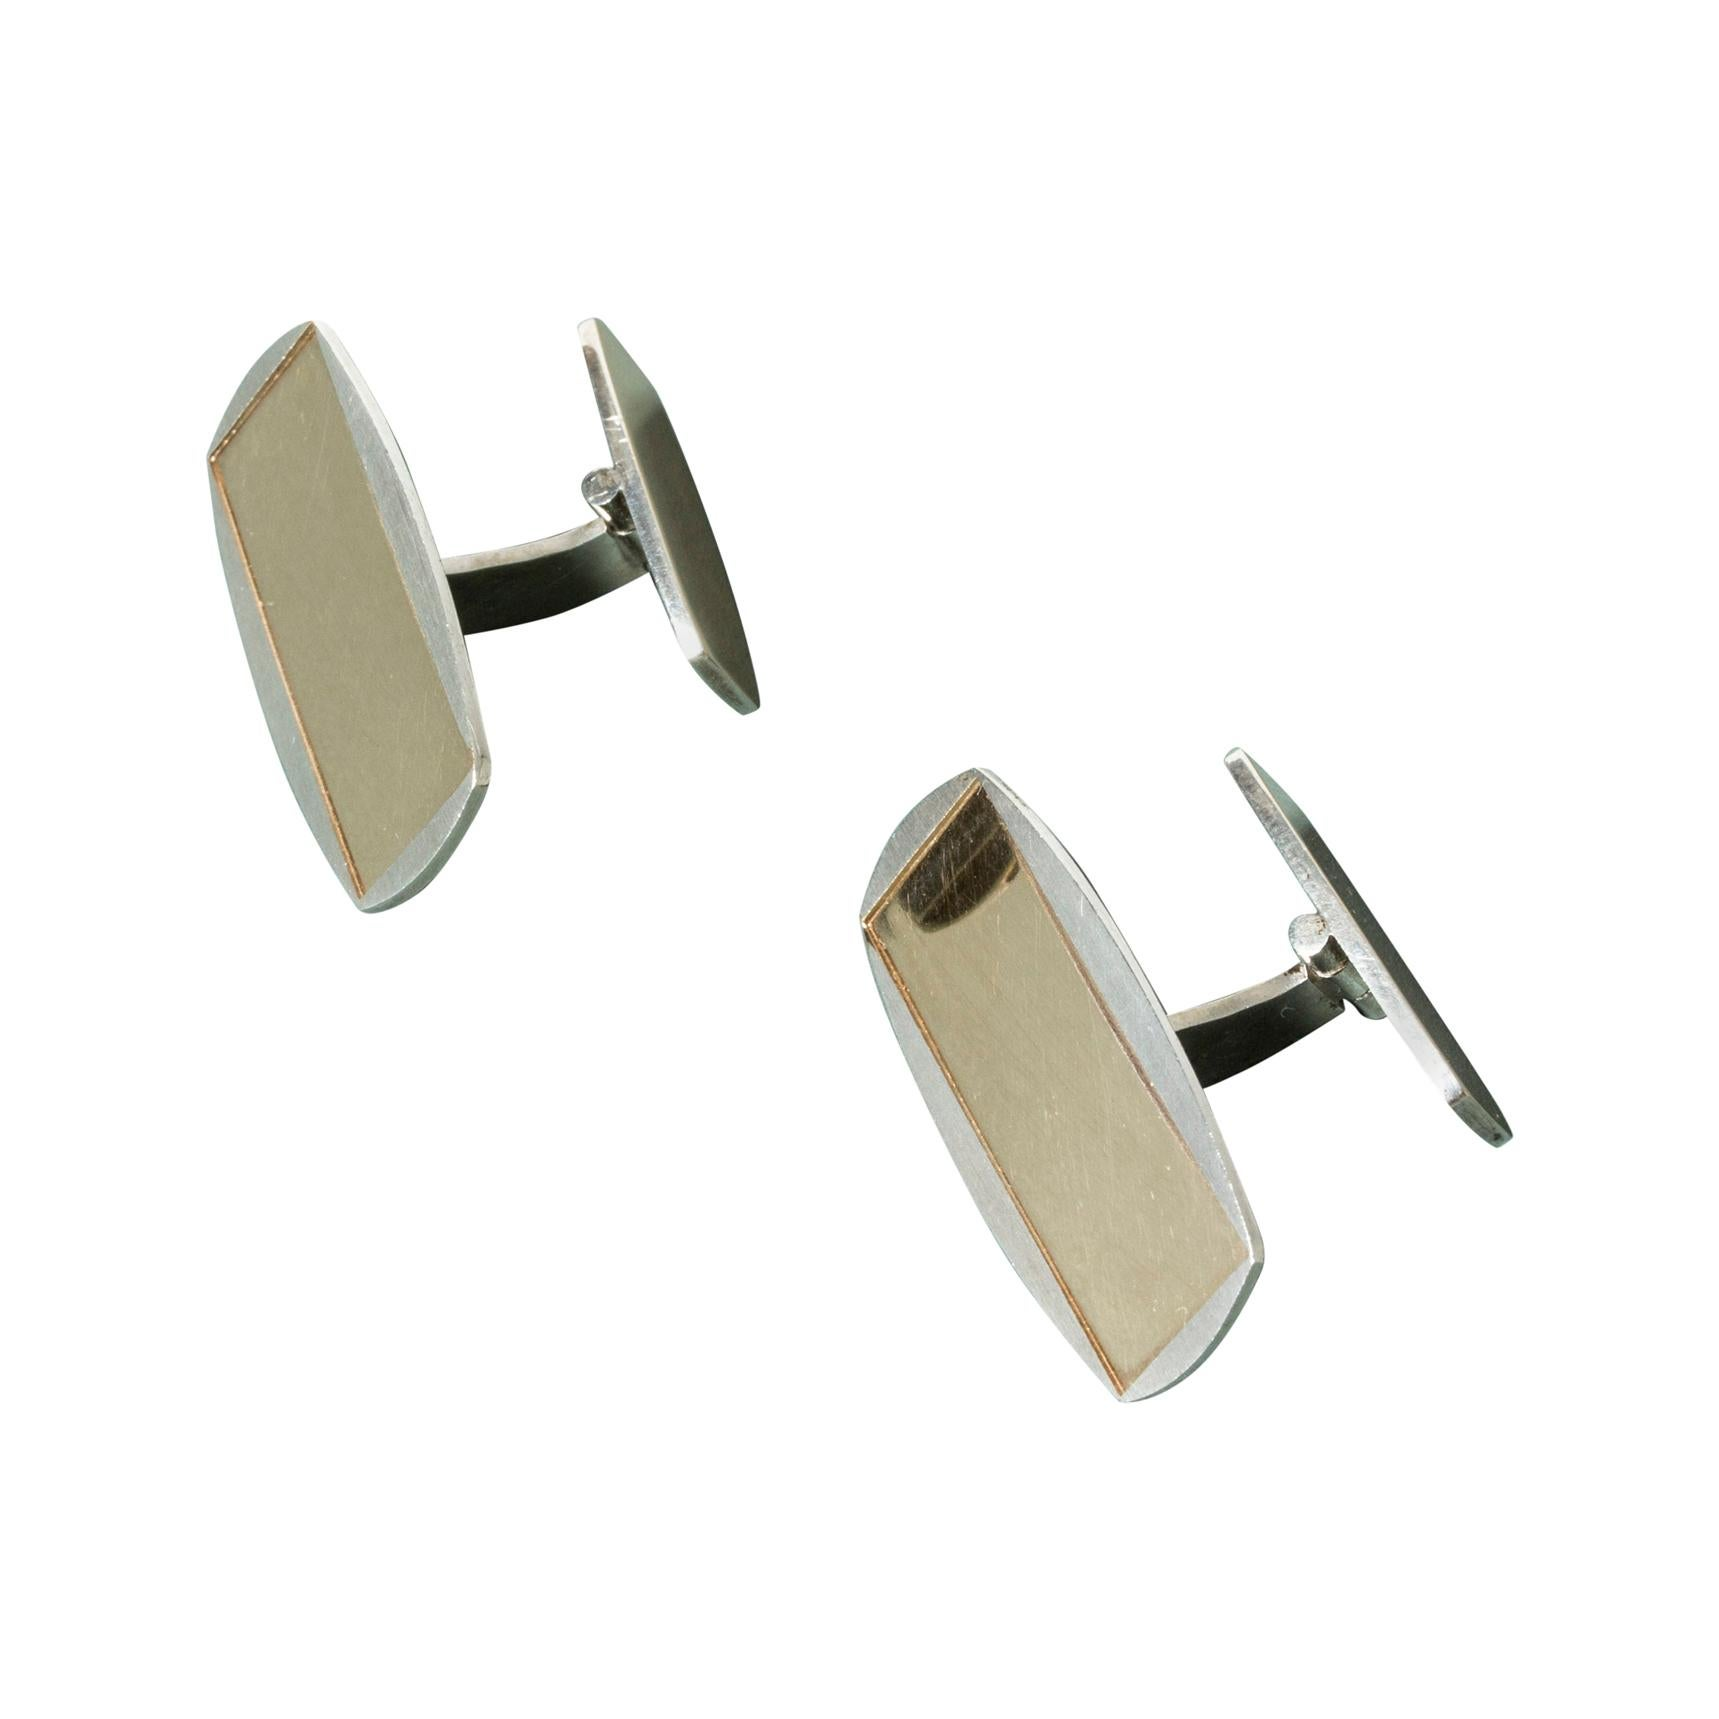 Pair of Gilded Silver Cufflinks from Alton